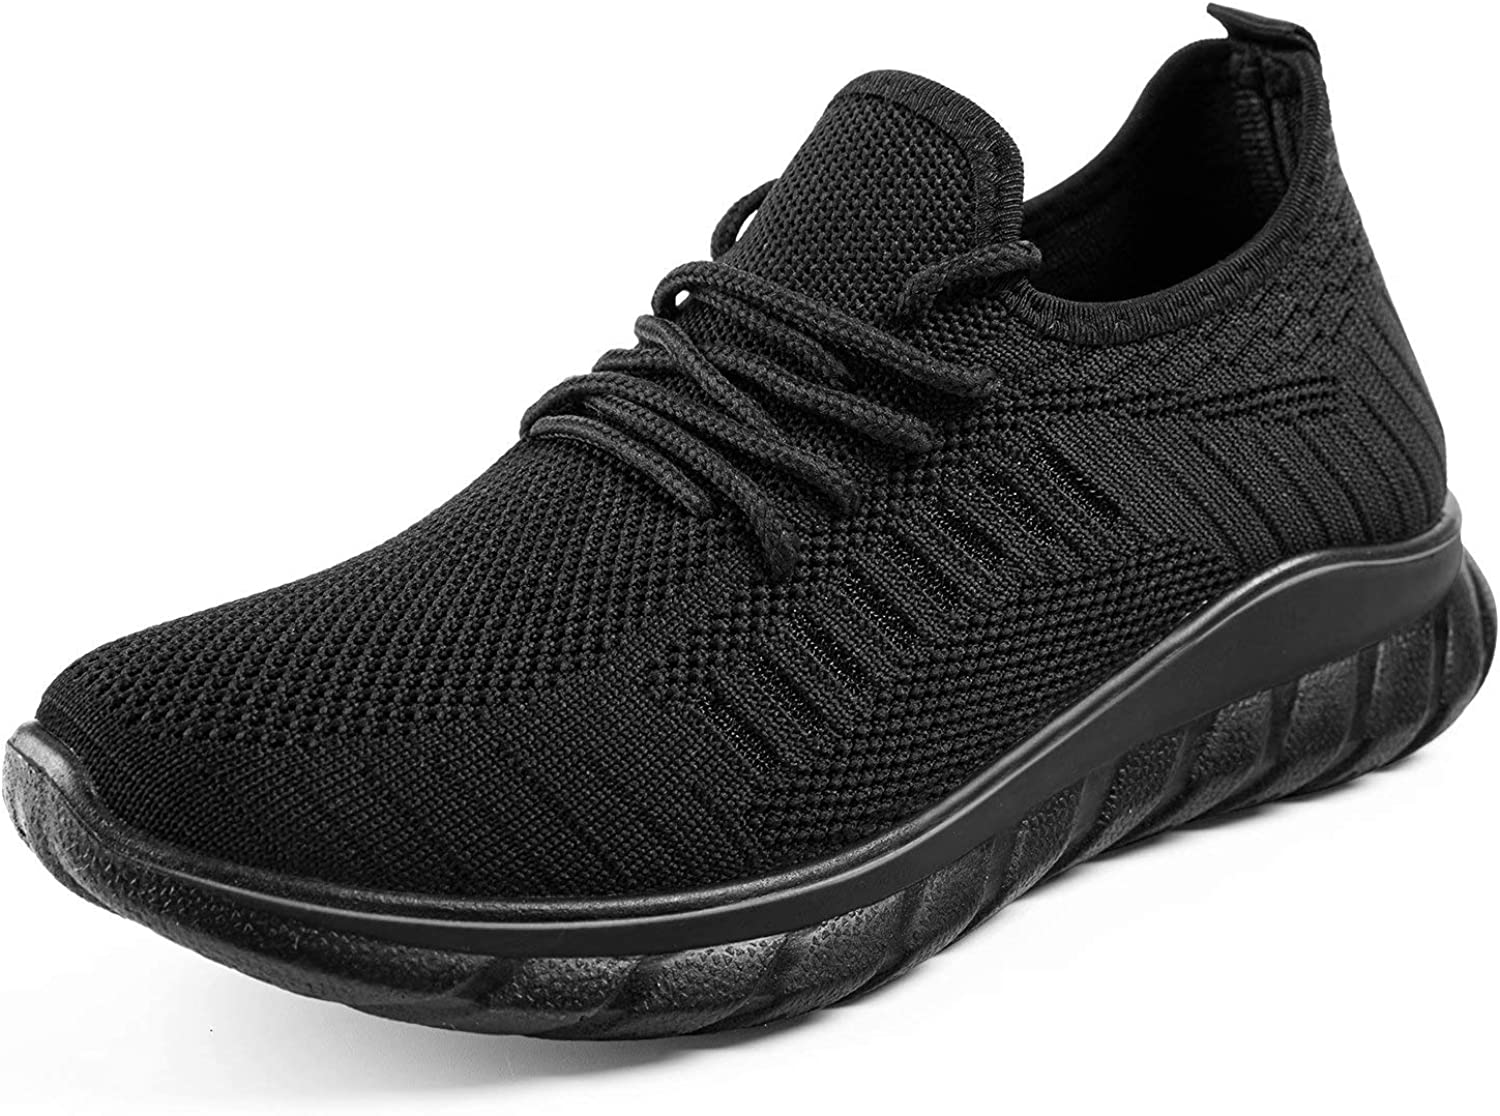 MUSSHOE Walking Shoes Women Slip On Running Shoes Mesh Lace Up Sock Shoes Workout Nursing Running Sneakers for Women Athletic Knit Breath Gym Tennis Loafers